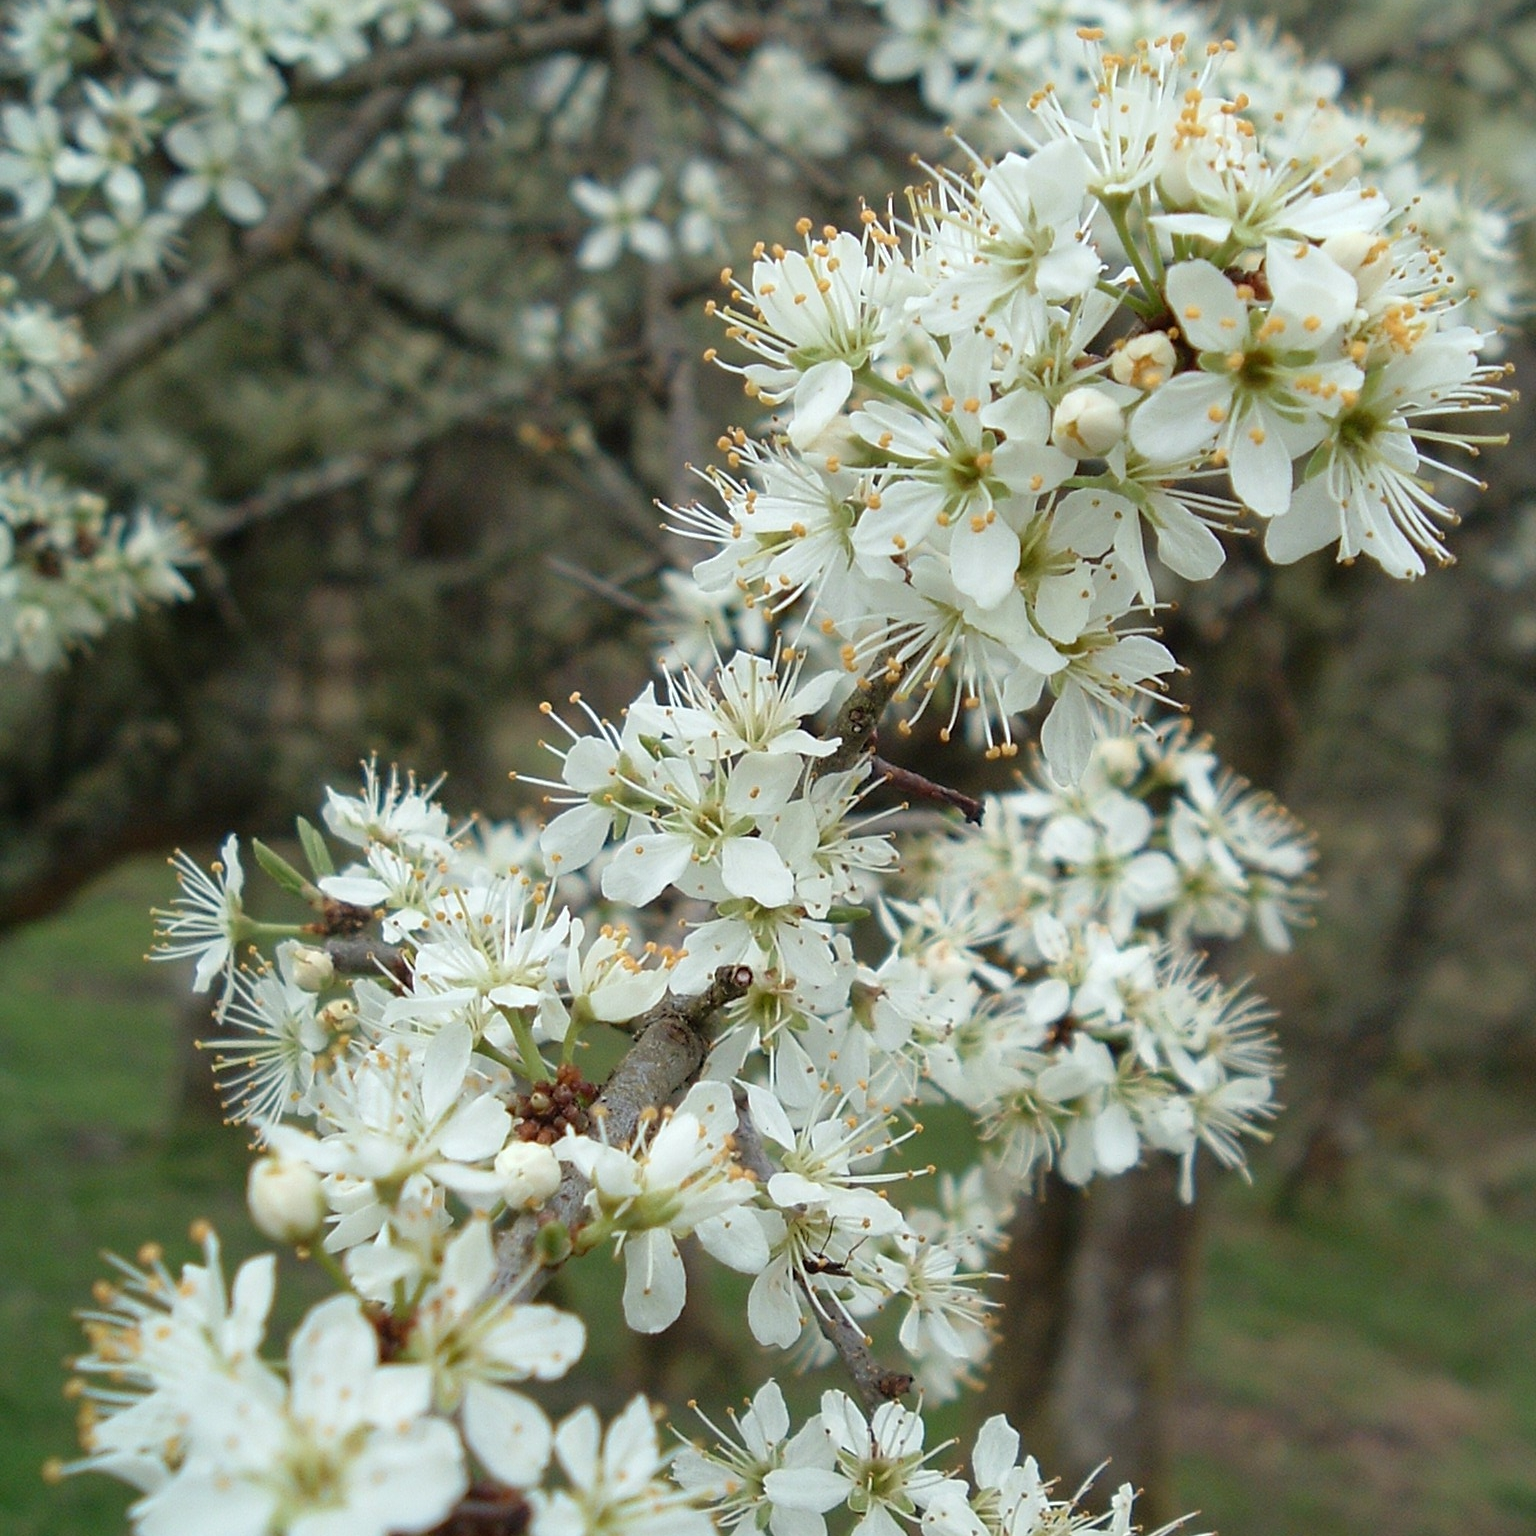 Sloe or Blackthorn - Sloe, or Blackthorn, is a small attractive thorny shrub, good for hedging with Hawthorn. Purple Sloes used for Sloe Gin.